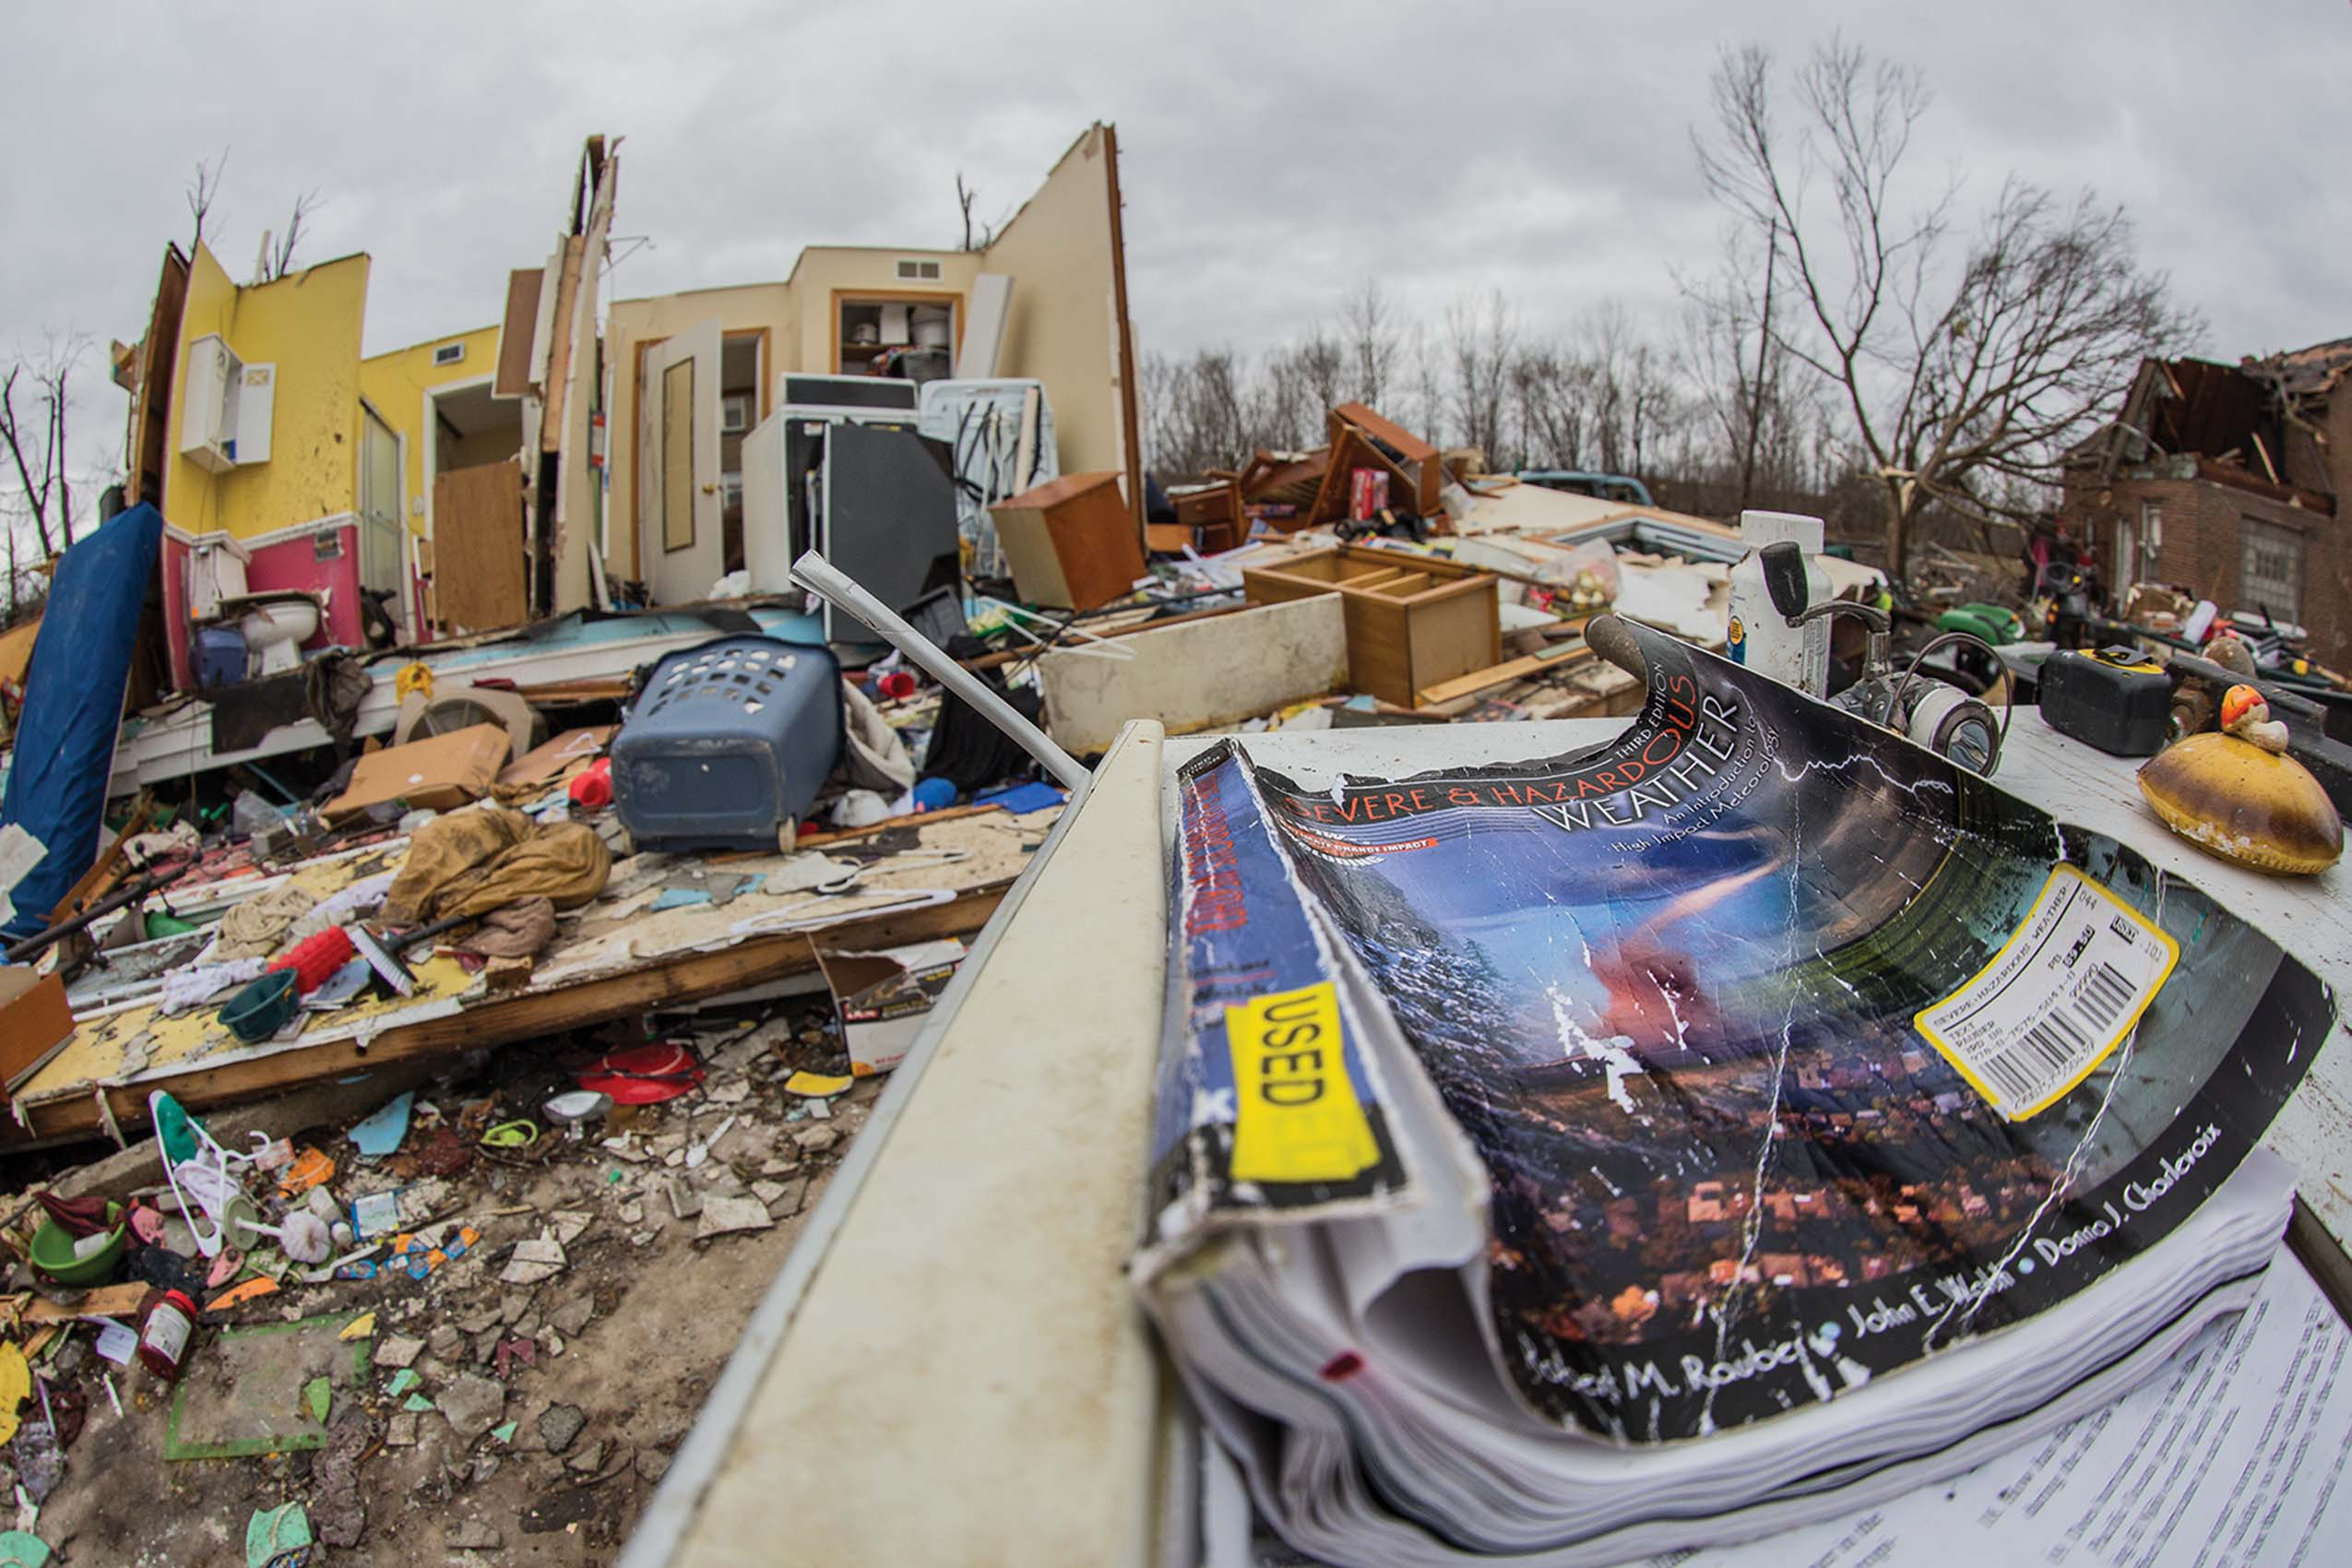 A book on tornadoes and other disasters (top photo) lies outside a damaged house in Naplate after the Feb. 28 storms.